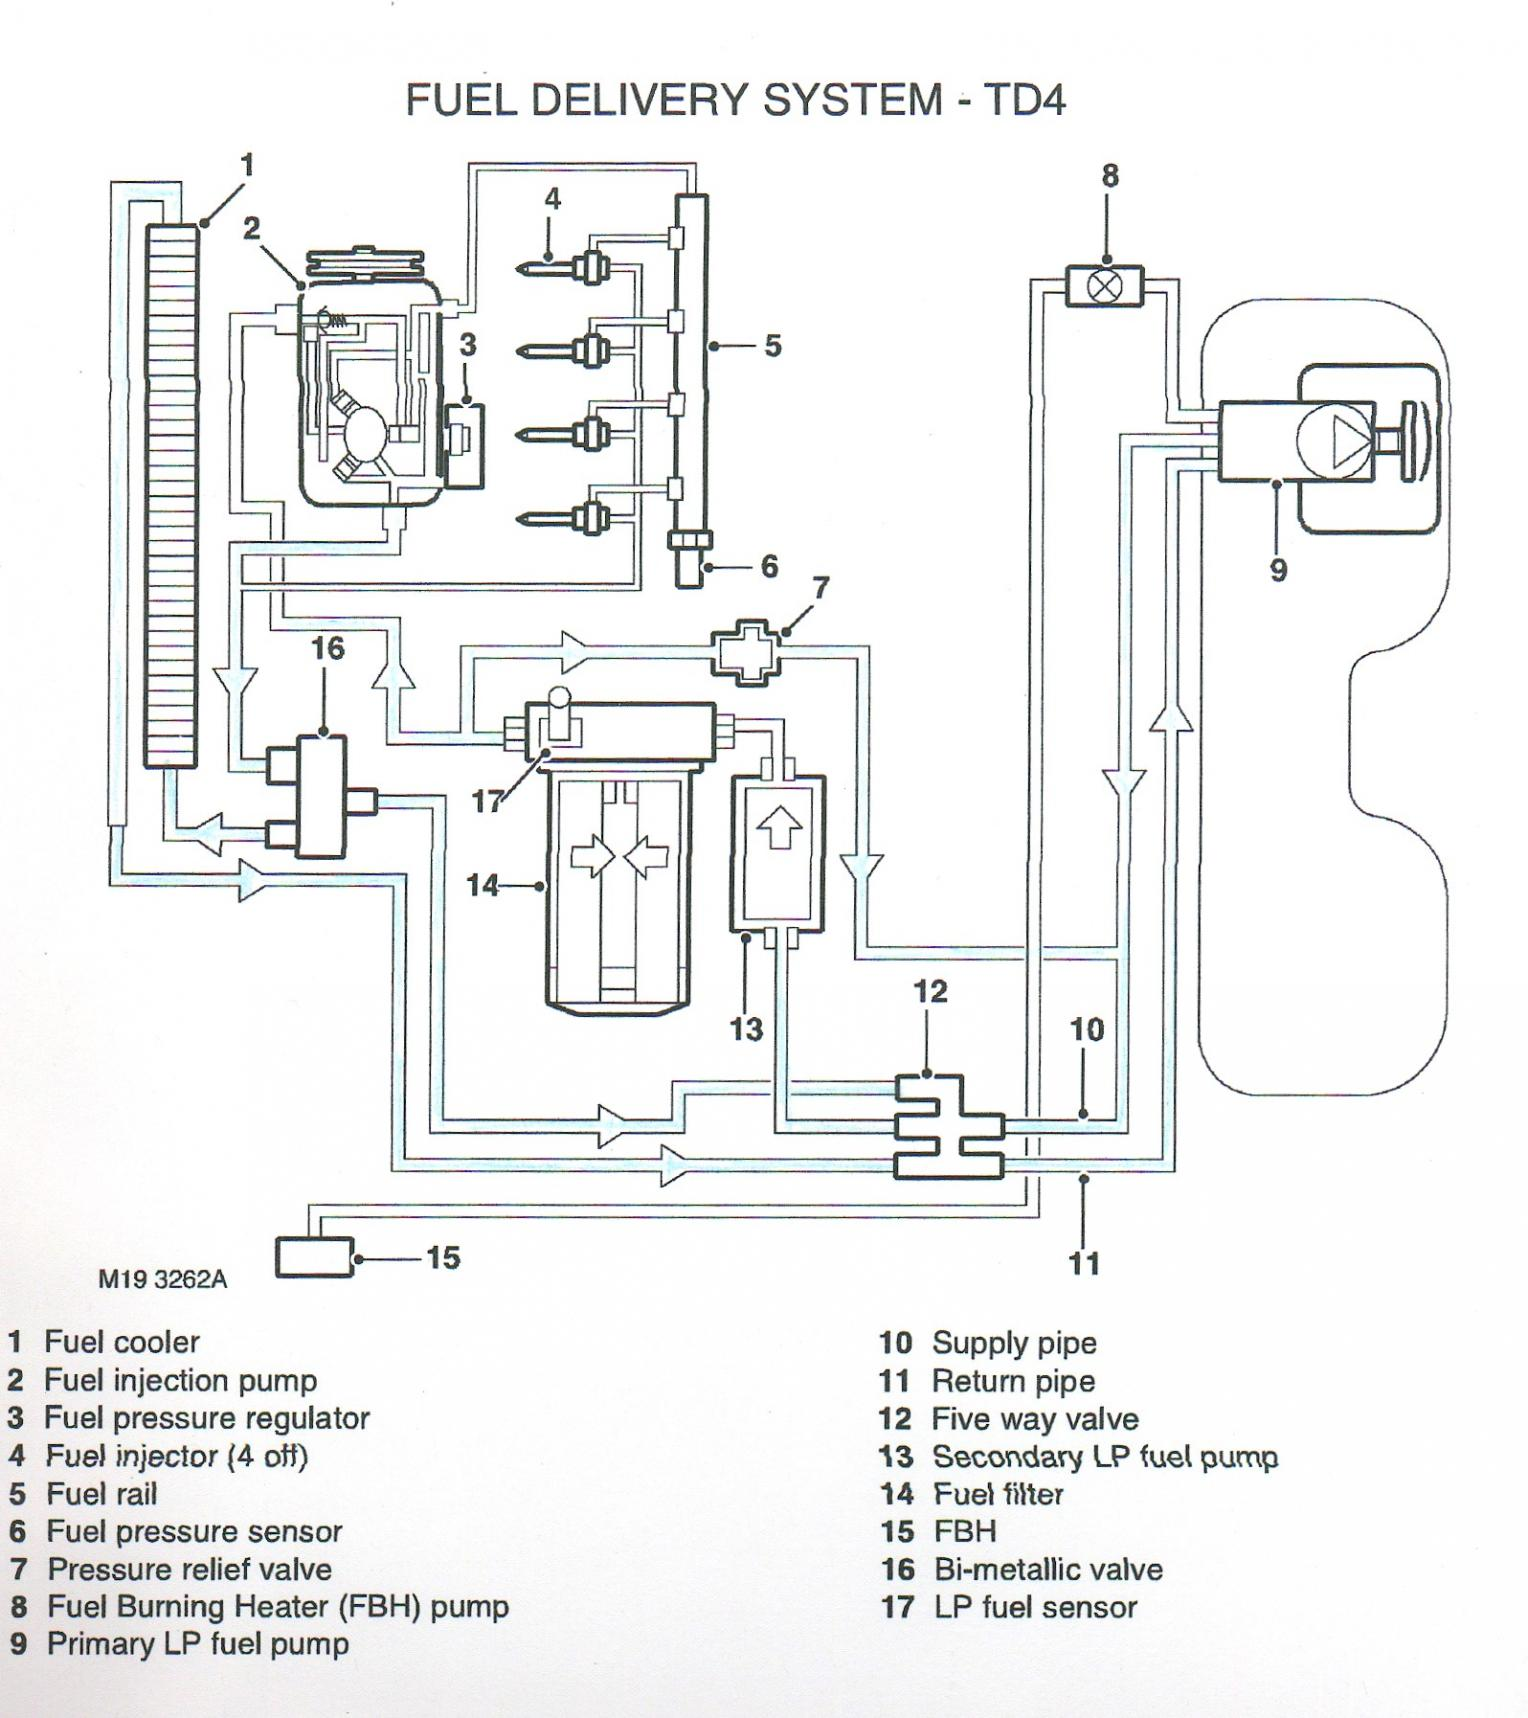 2000 Land Rover Freelander Engine Diagram / Pin On